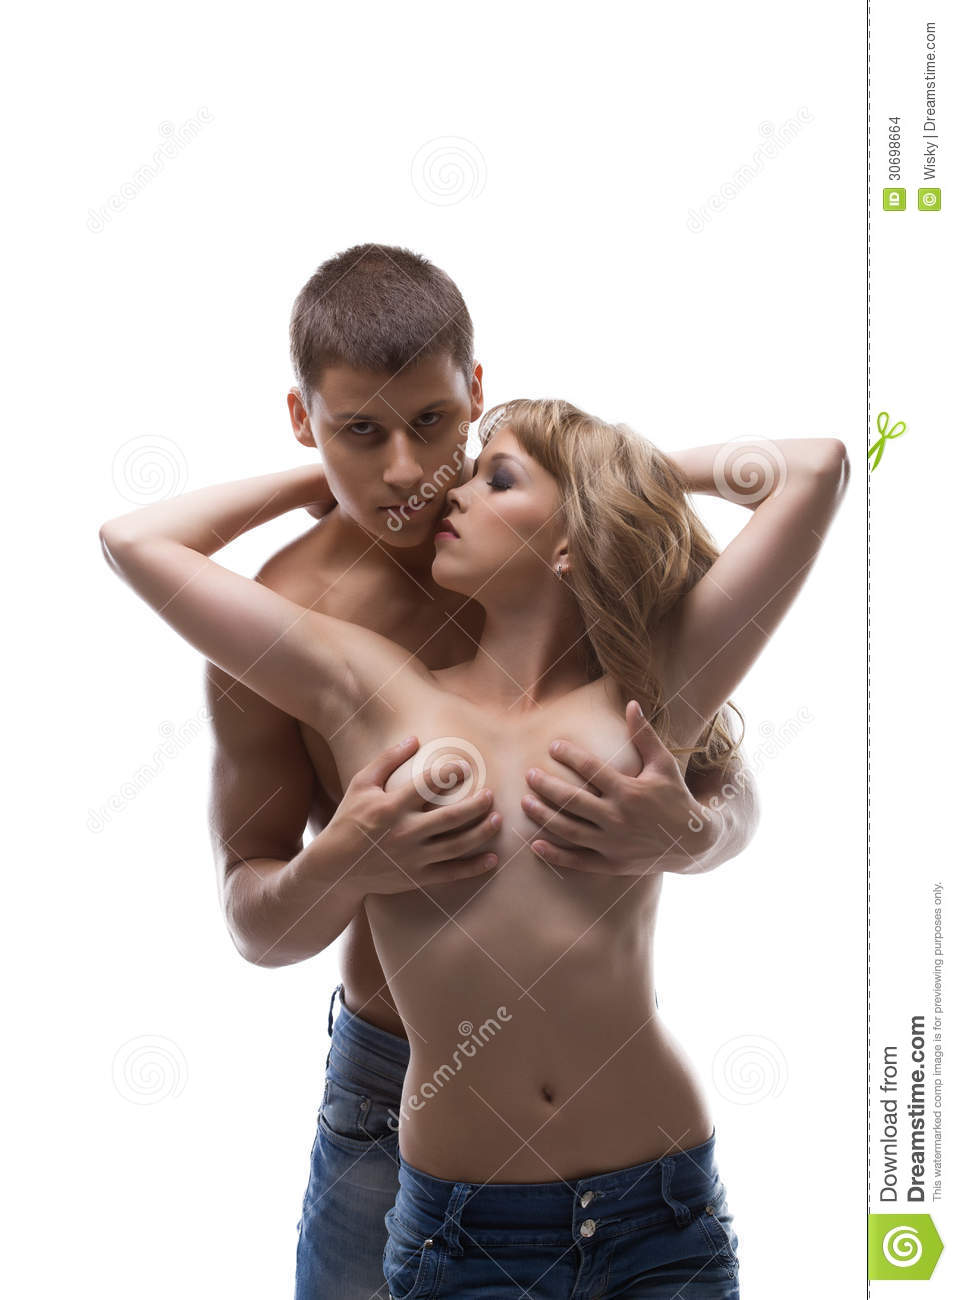 naked men touching women